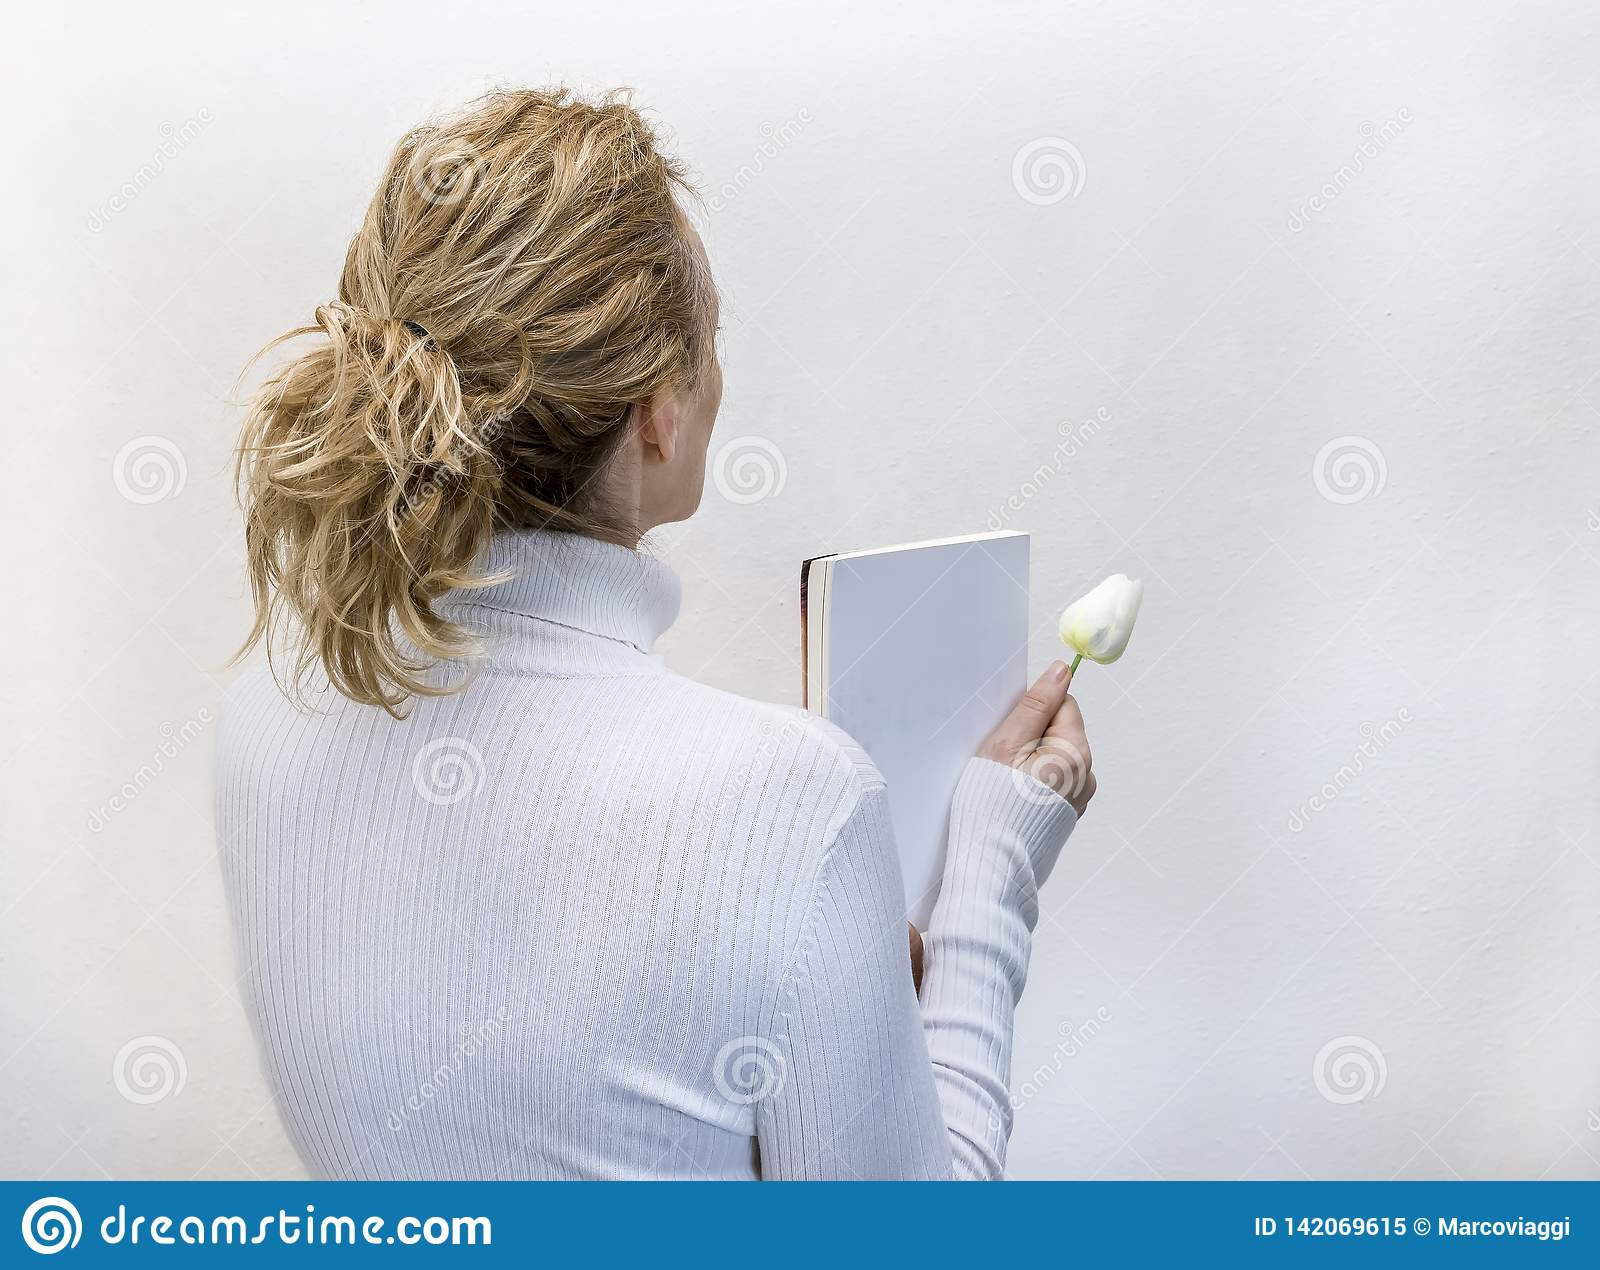 Blond woman dressed in white holding a book and a white flower against a completely white background